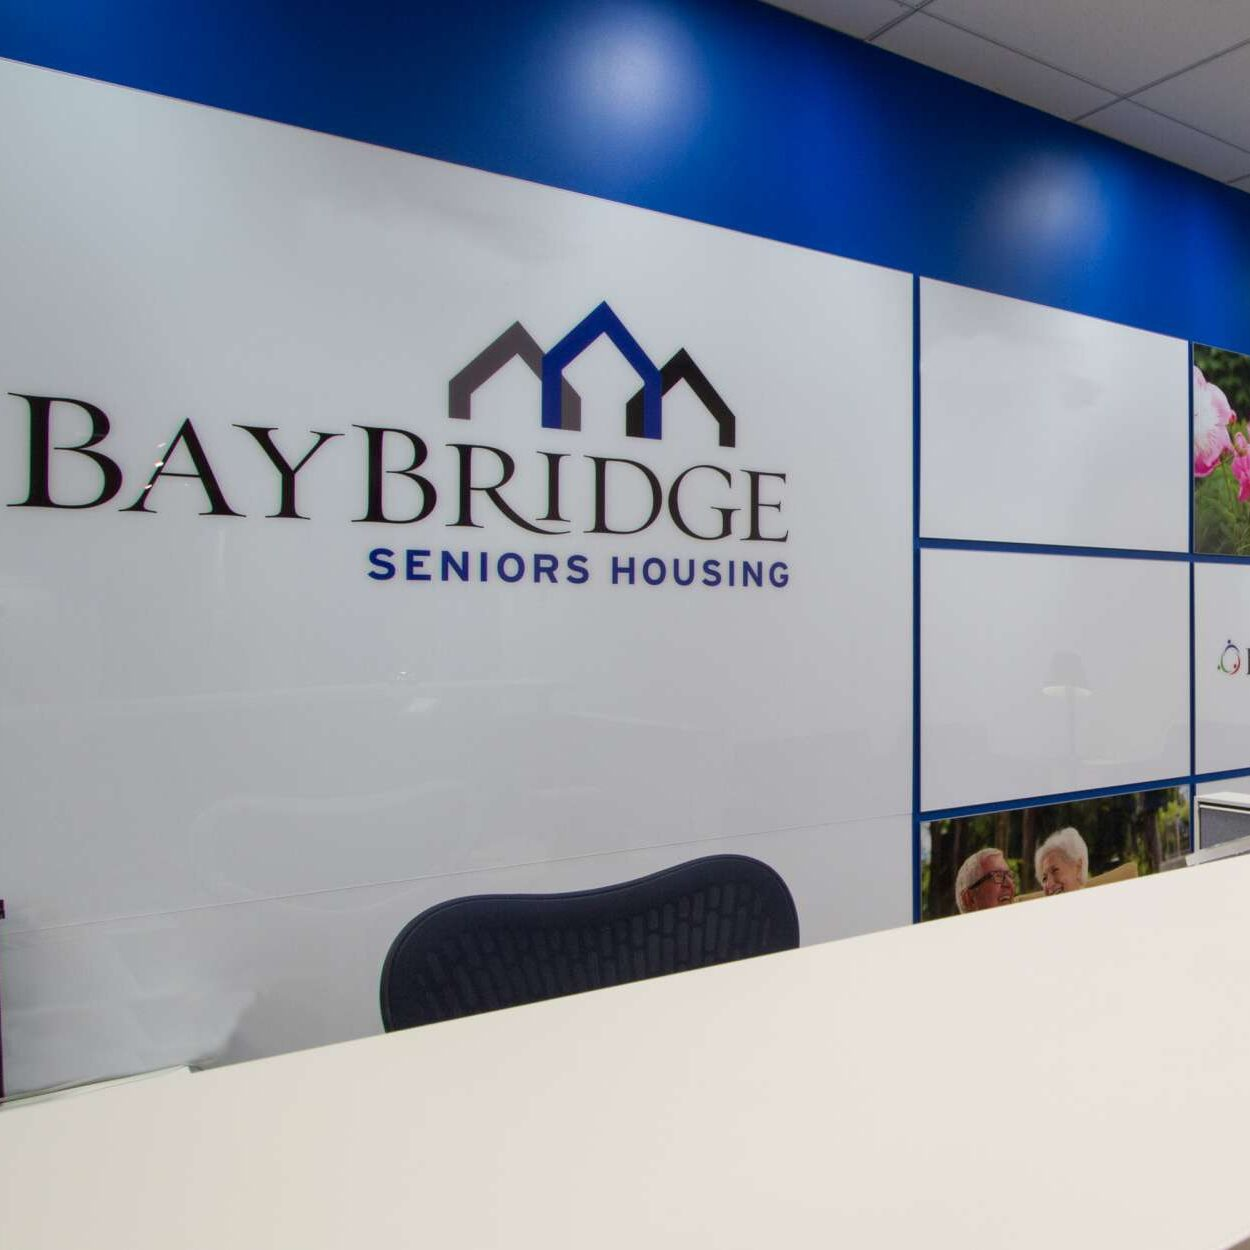 BayBridge Seniors Housing